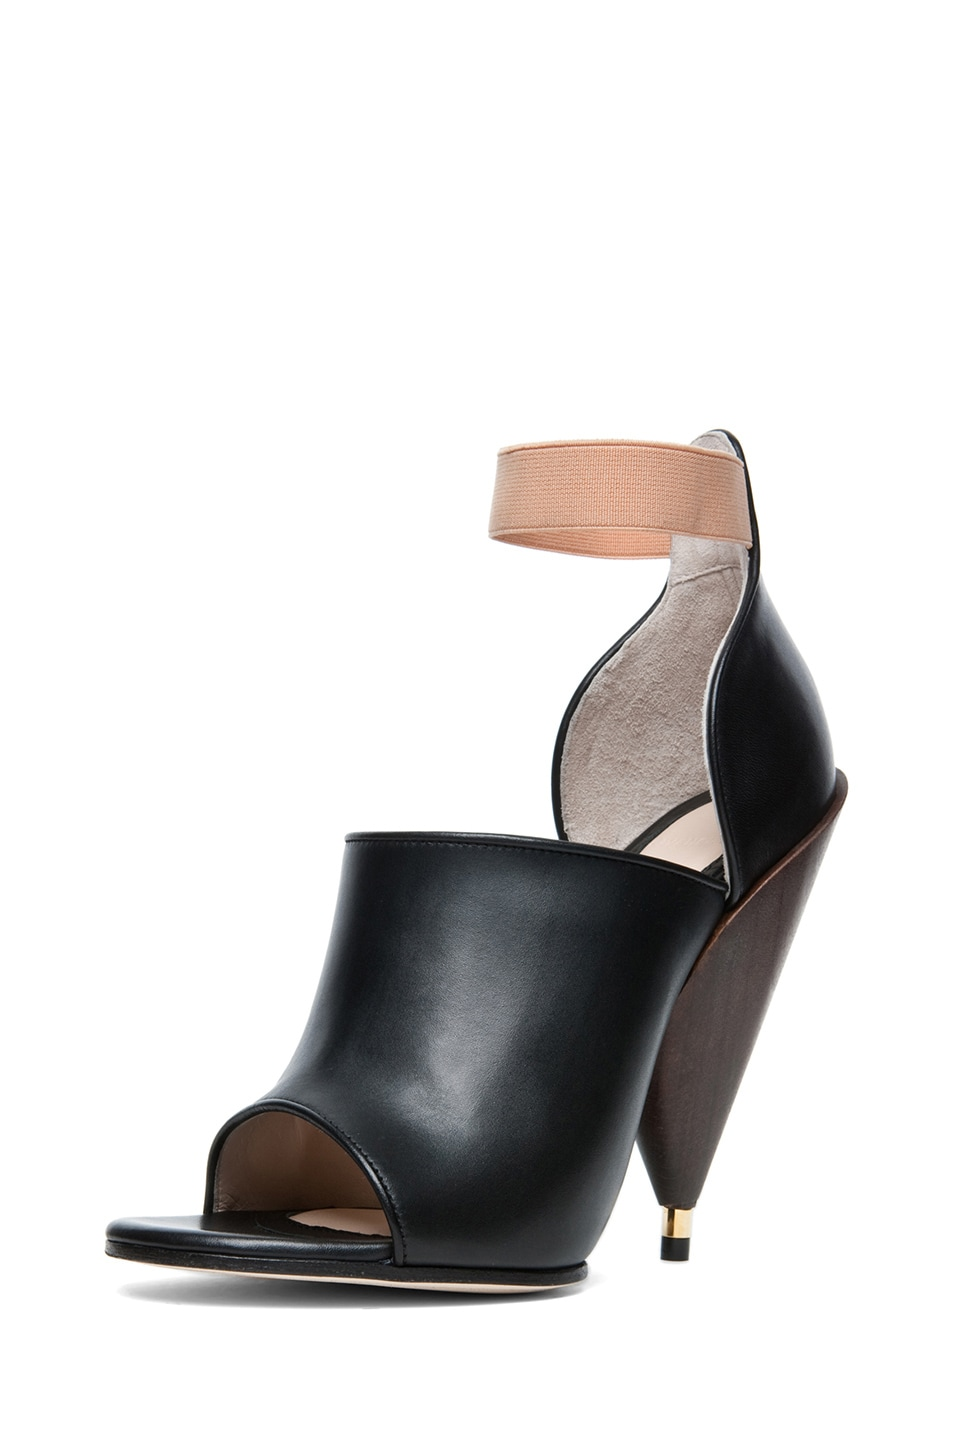 Image 2 of GIVENCHY Dunka Calfskin Leather Podium Heel in Black